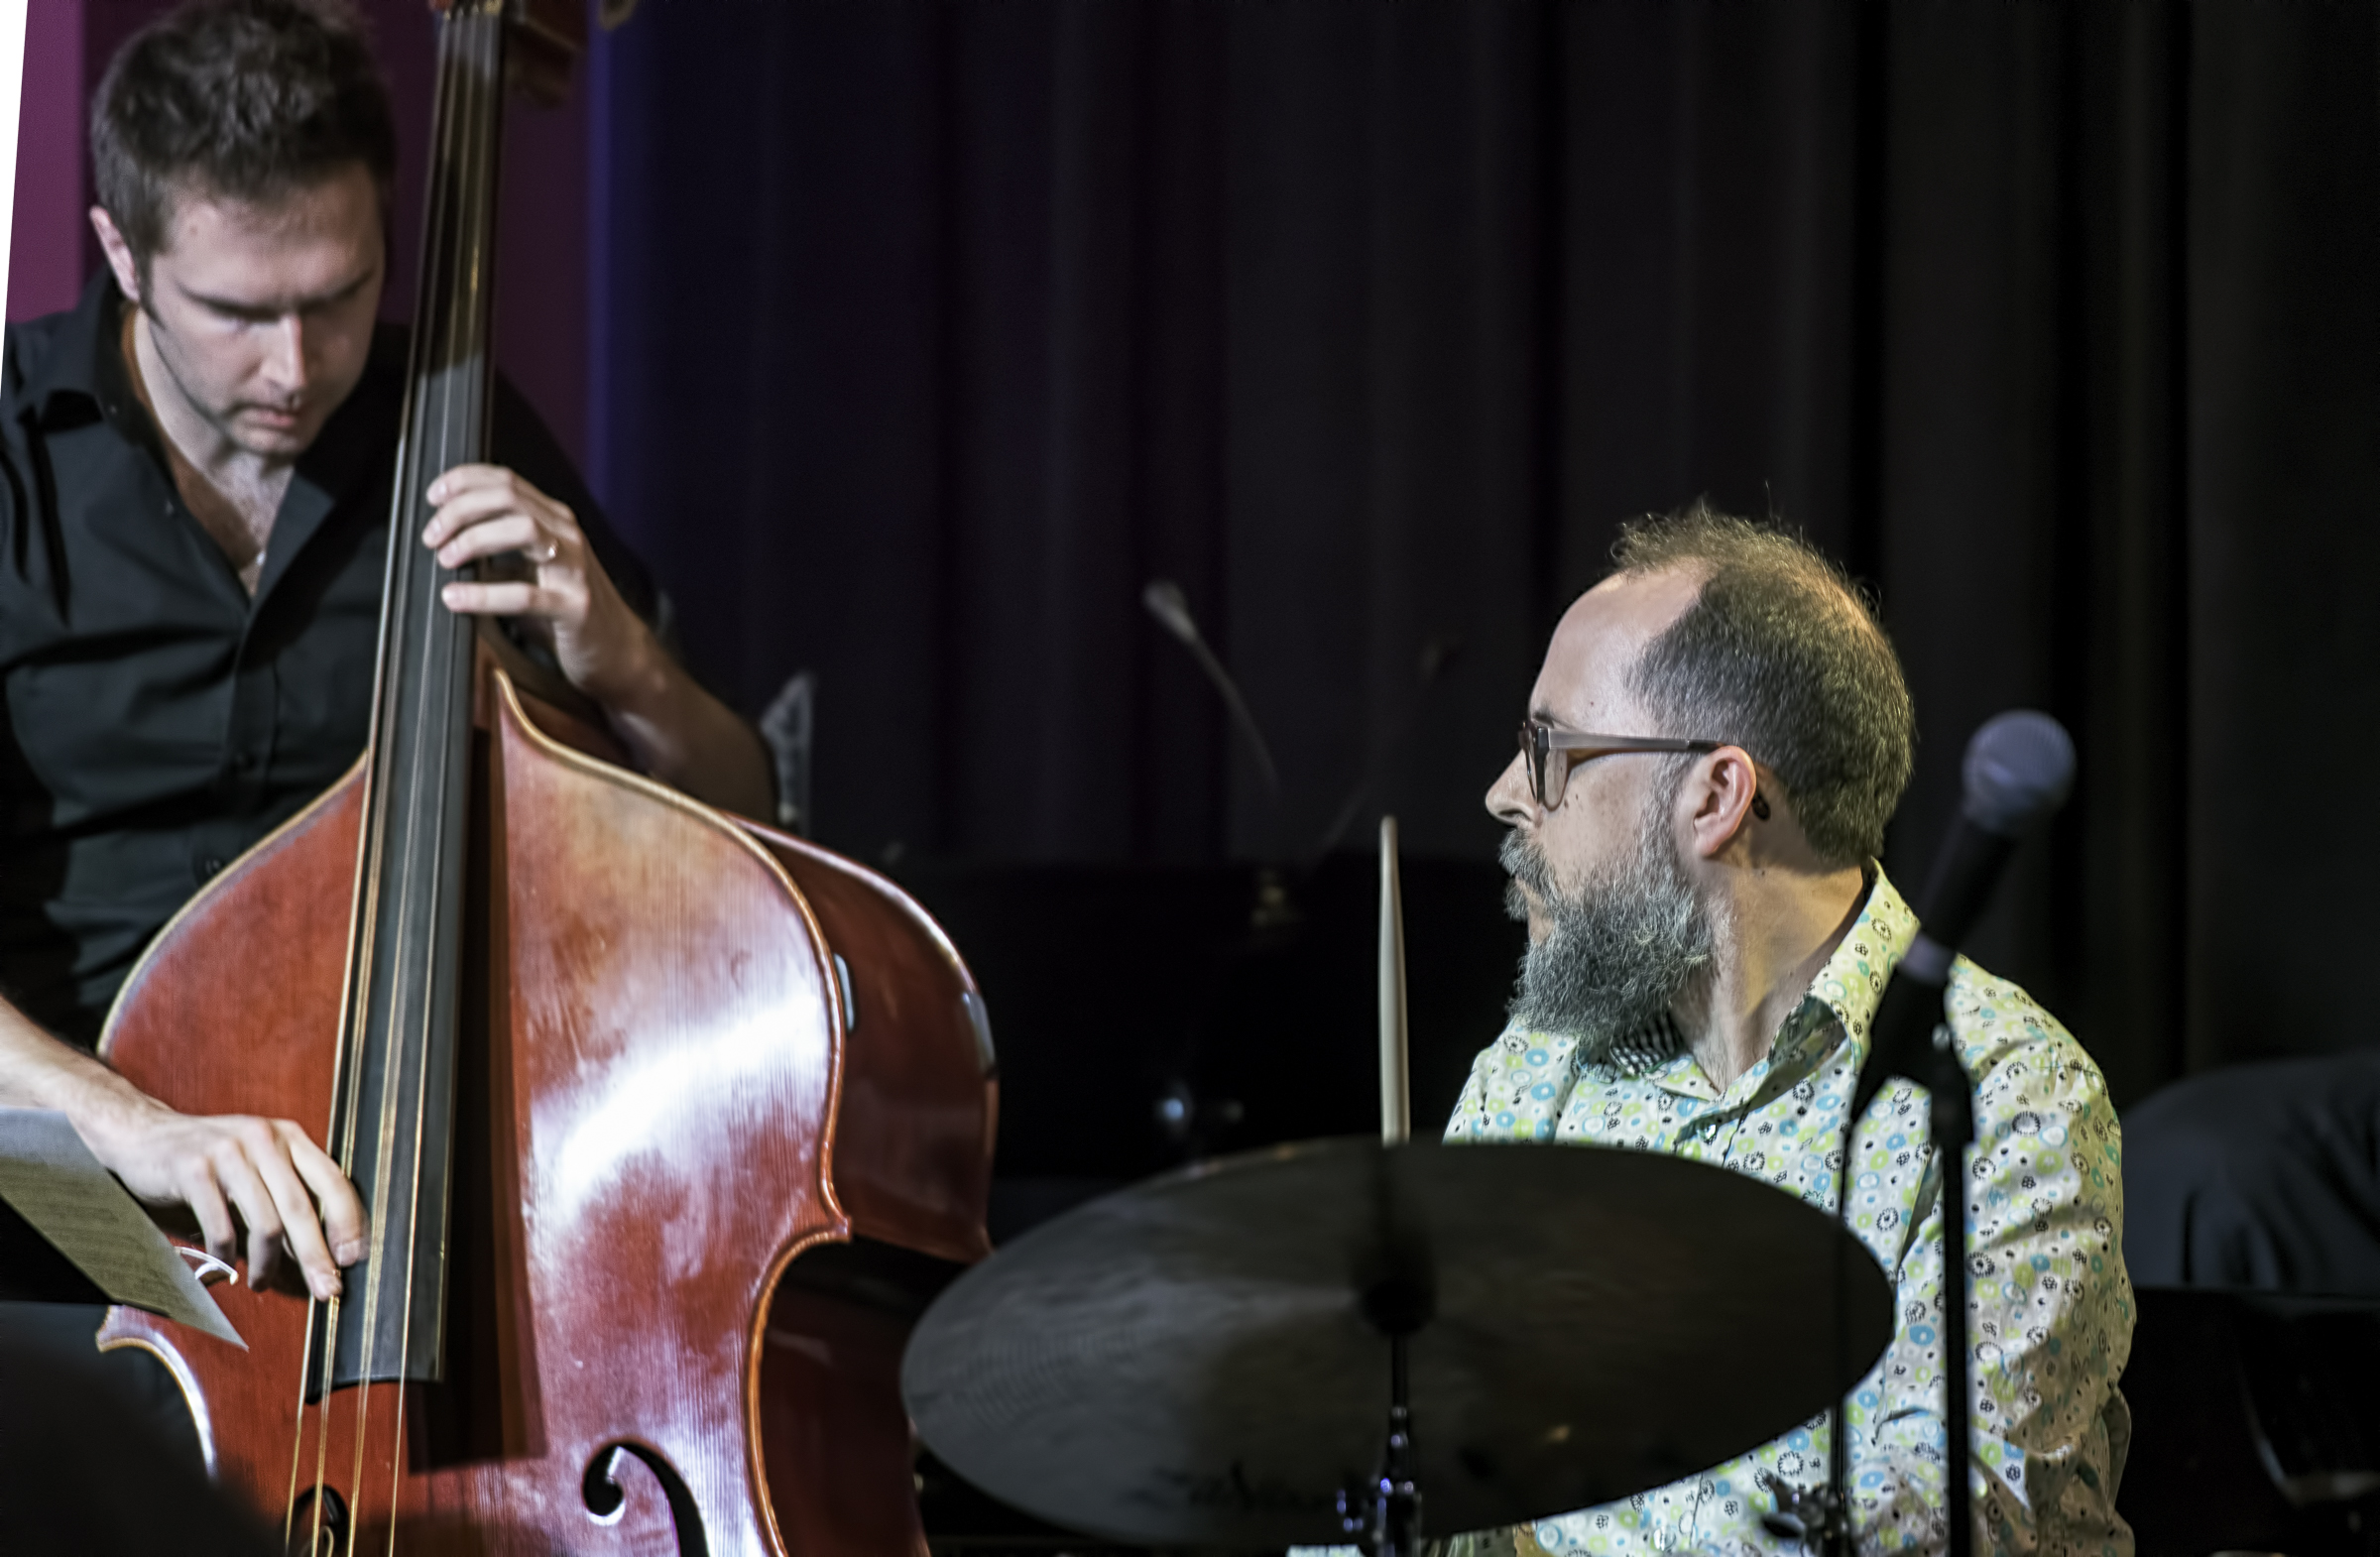 Ben Hedquist And John Hollenbeck With Eric Rasmussen And Scottsdale Community College Jazz Orchestra At The Nash In Phoenix